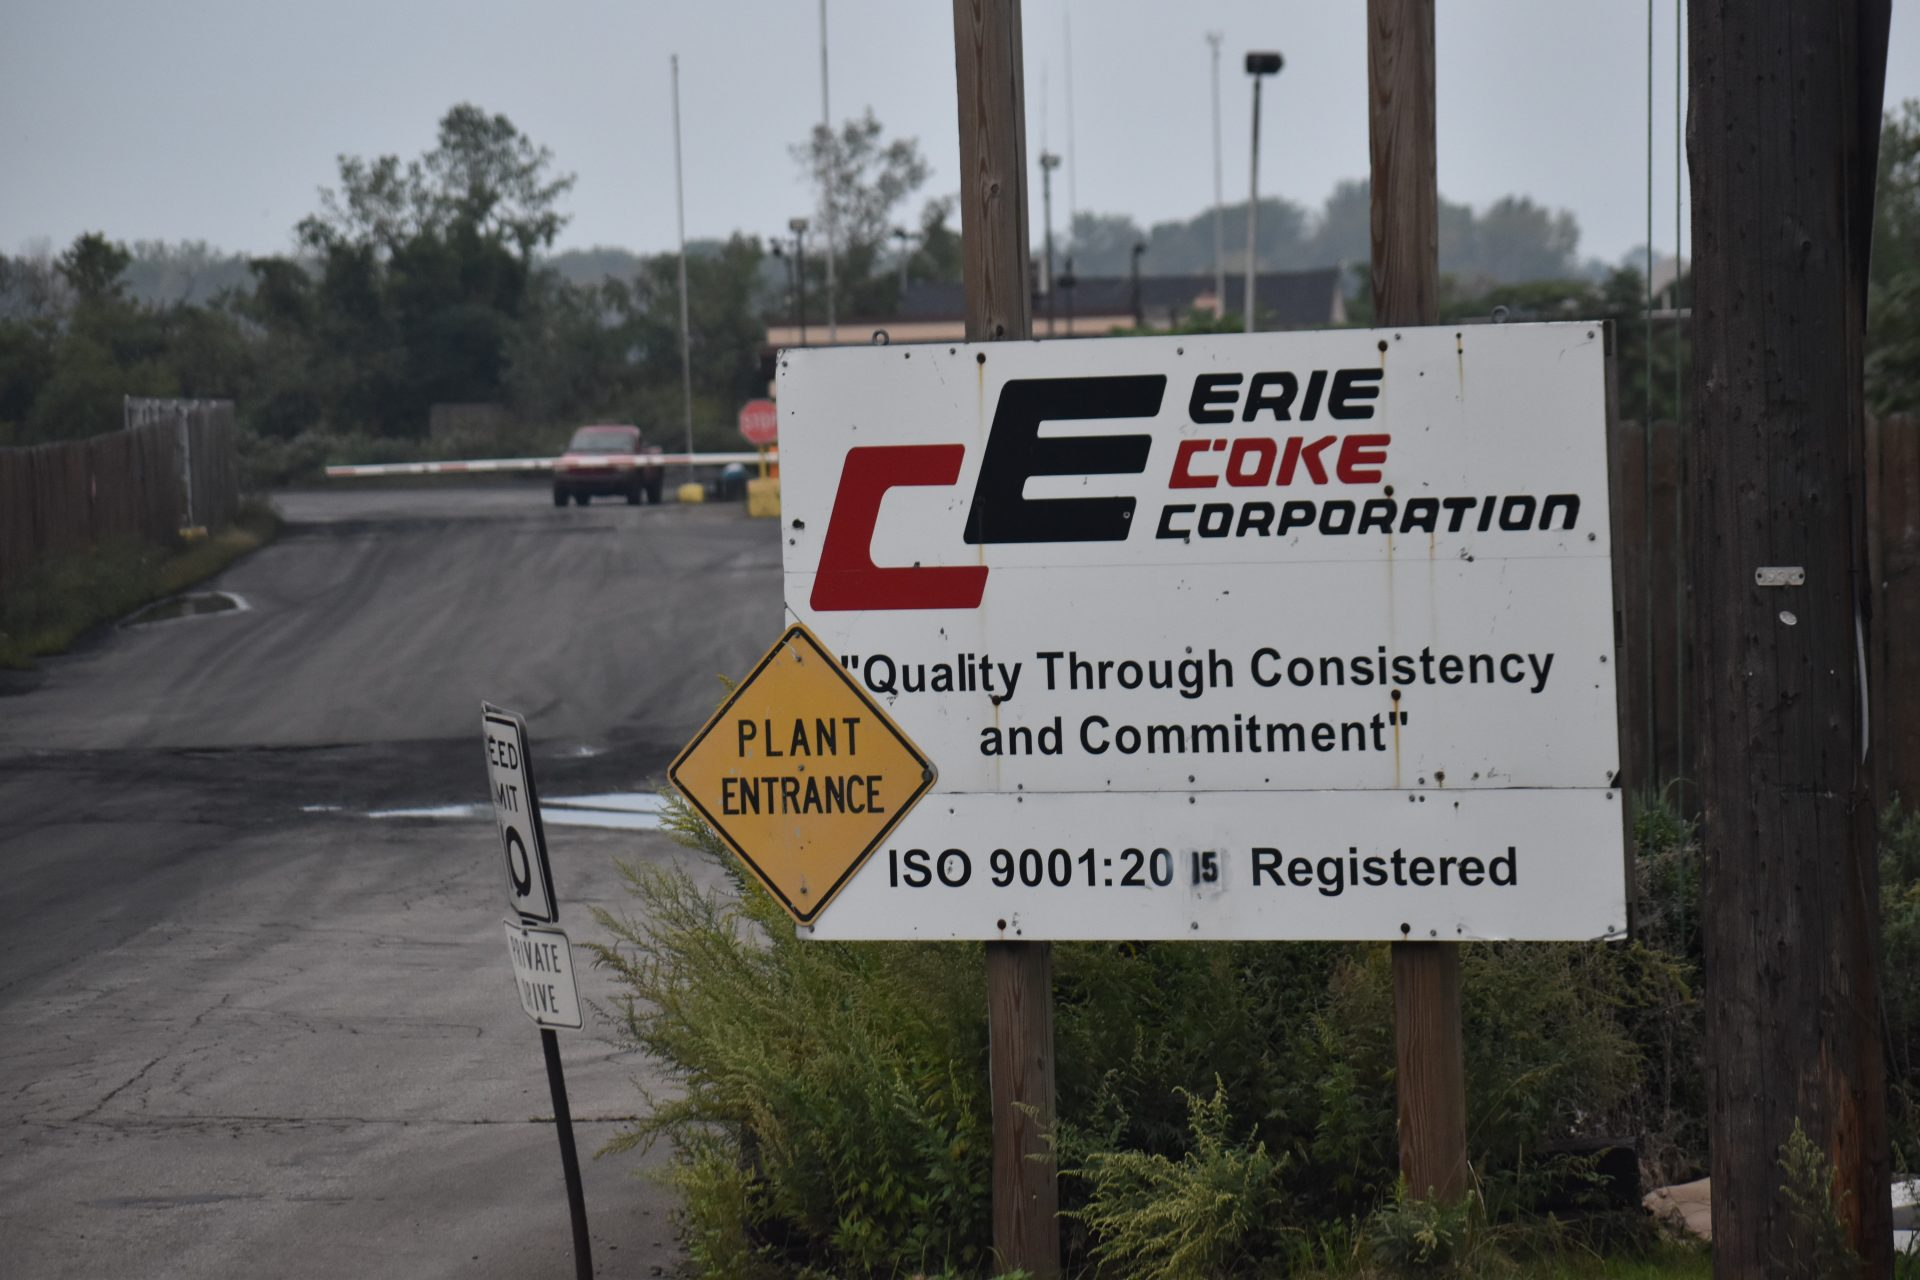 A sign for the entrance of Erie Coke.